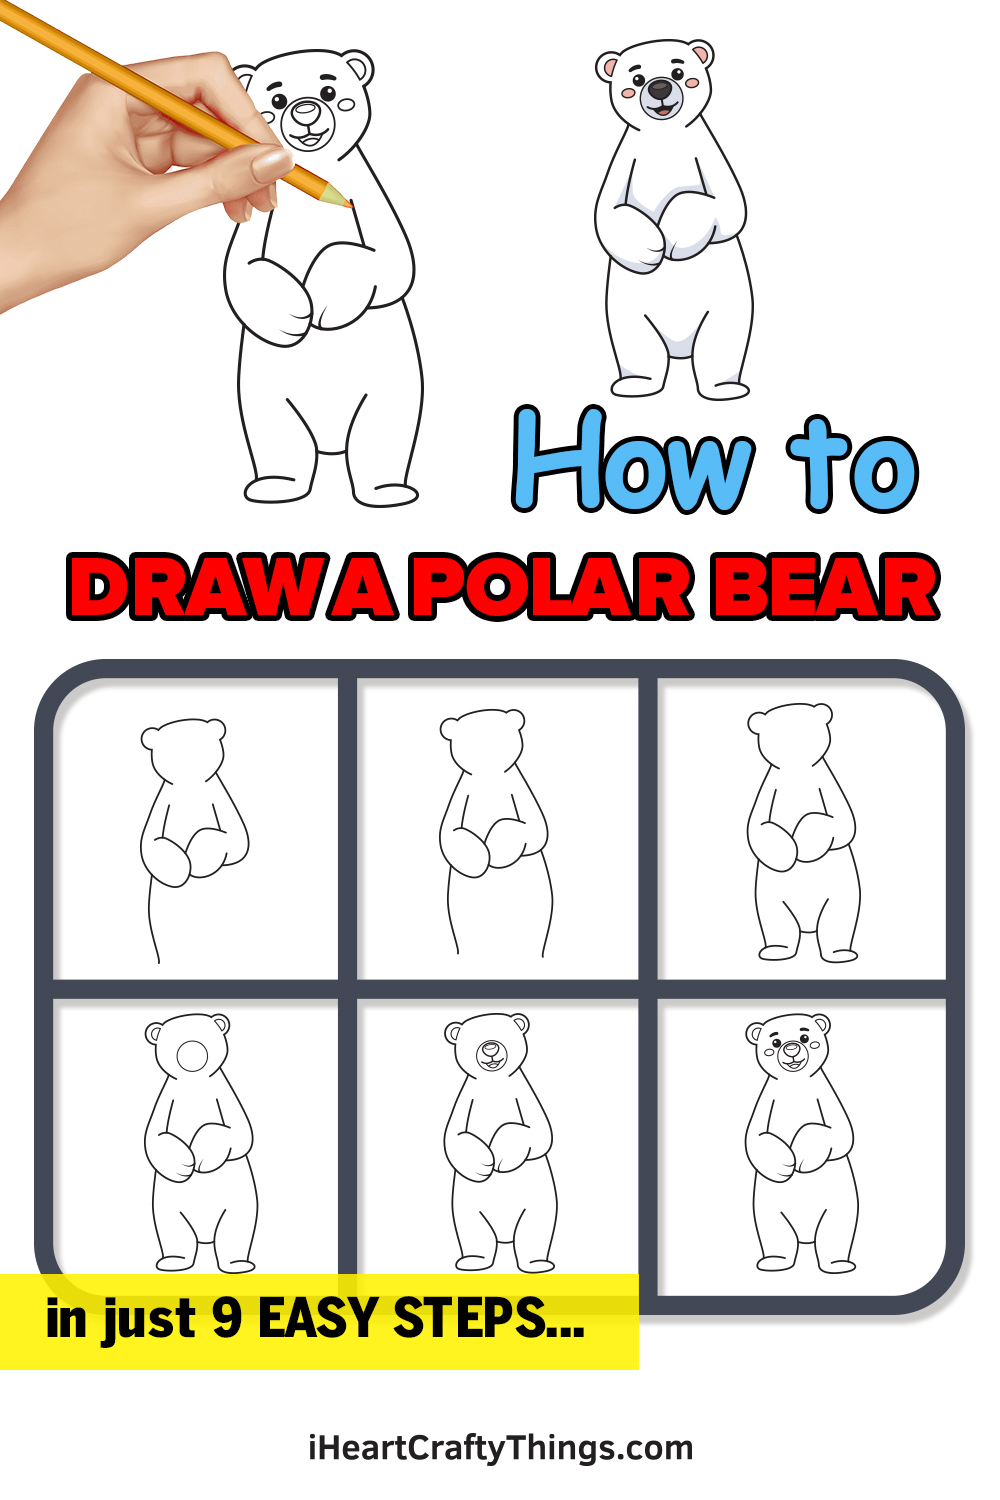 how to draw a polar bear in 9 easy steps